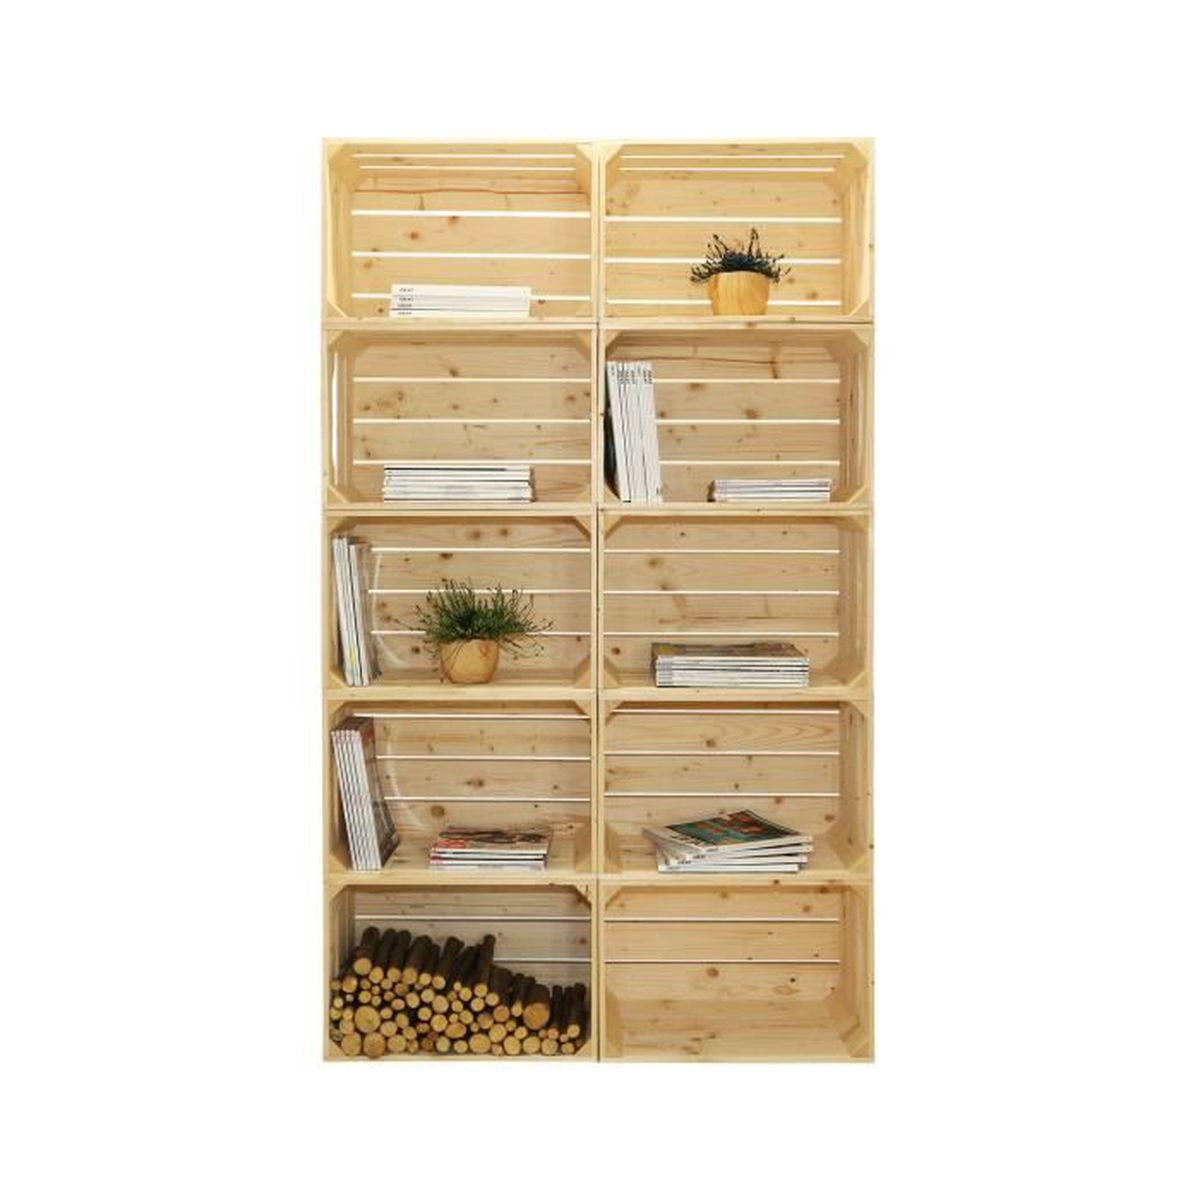 biblioth que 10s kit pr t assembler caisses en bois x10 fabriqu e main en france. Black Bedroom Furniture Sets. Home Design Ideas